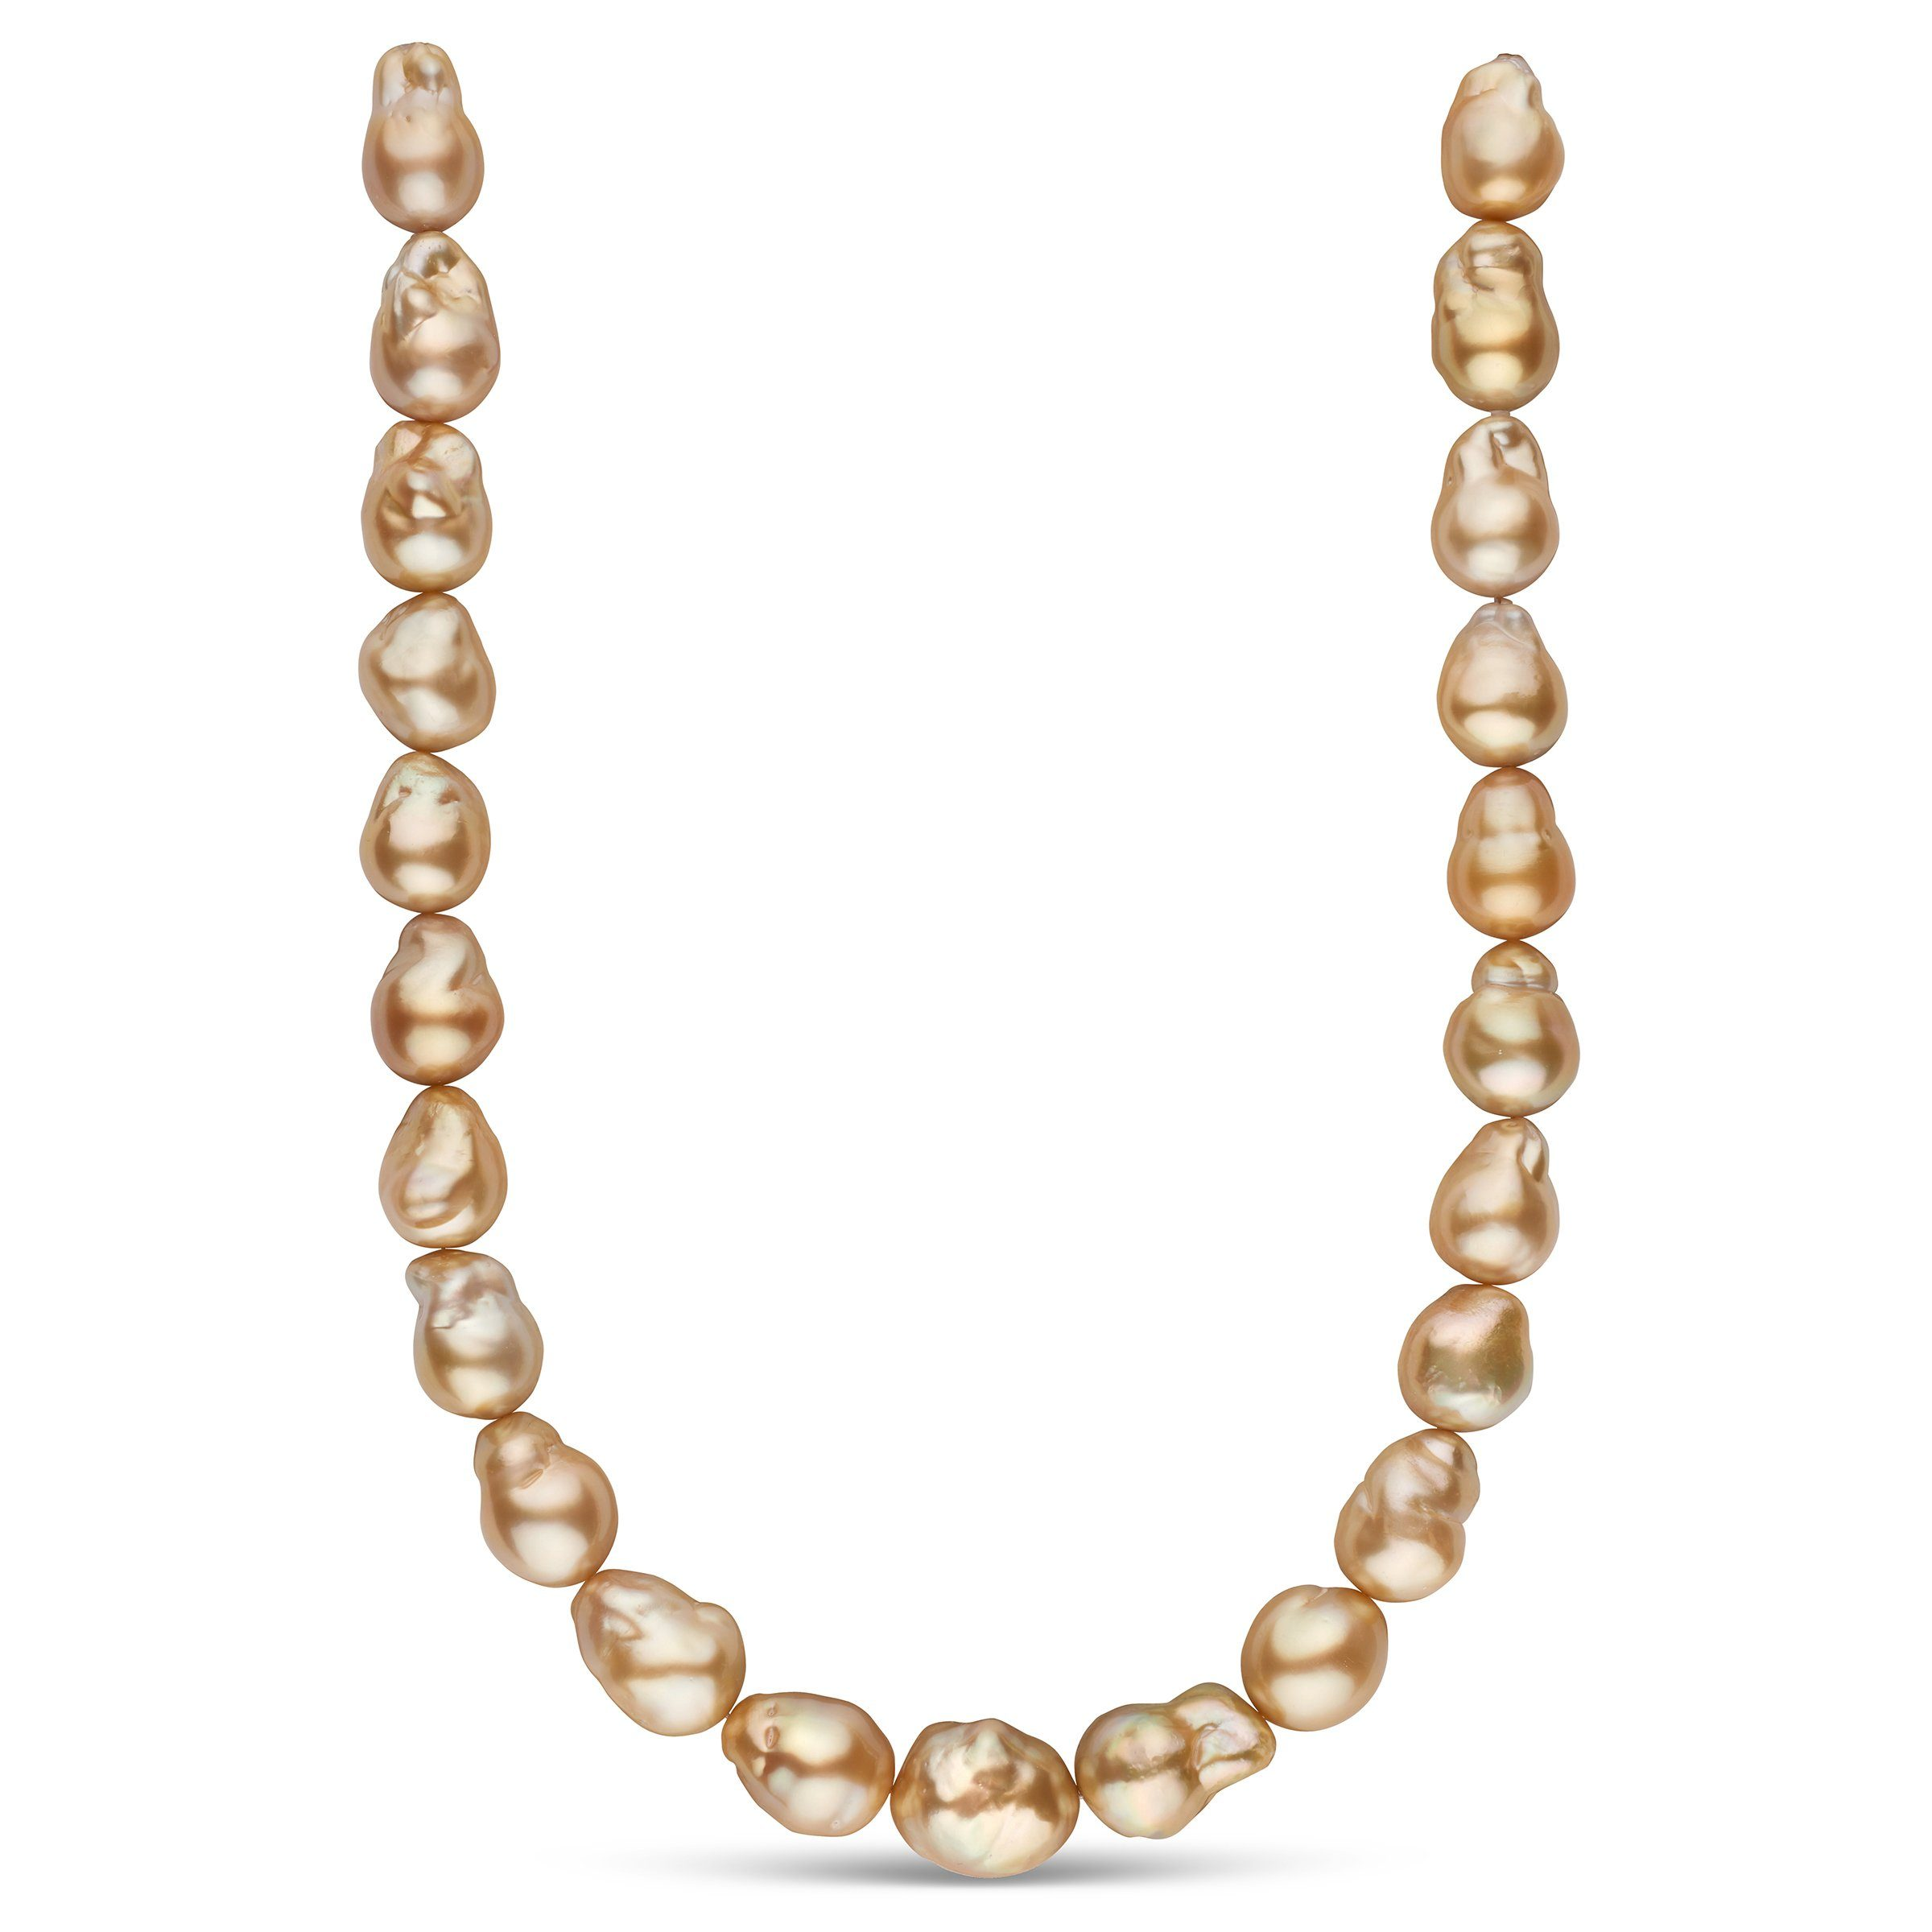 14.0-16.5 mm AA+/AAA Golden South Sea Baroque Pearl Necklace